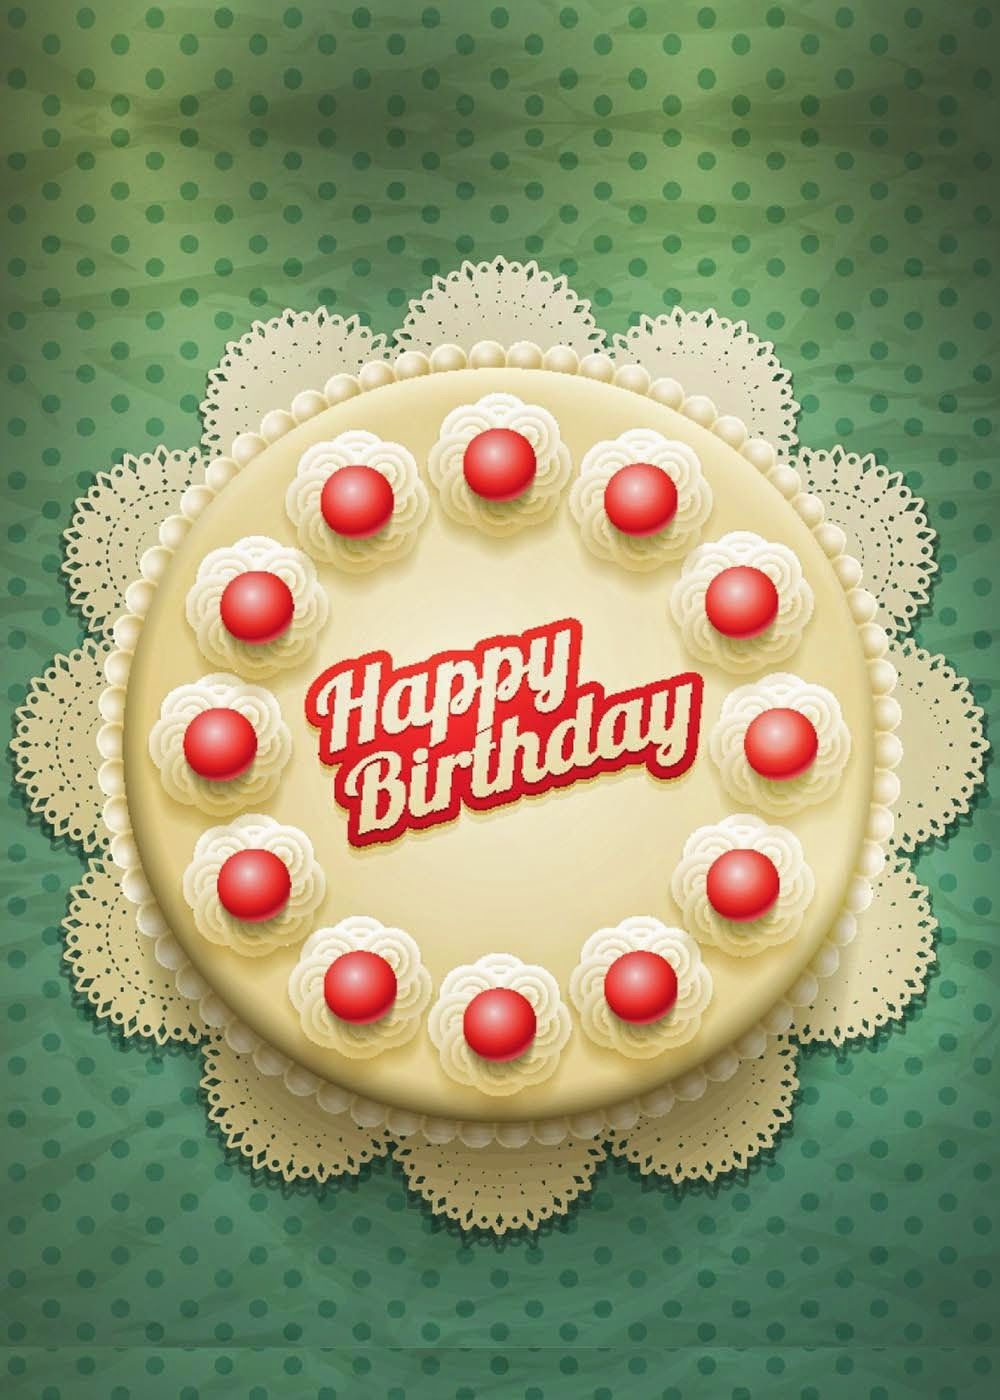 Happy Birthday Greetings Cards Sms Wishes Poetry Backgrounds And